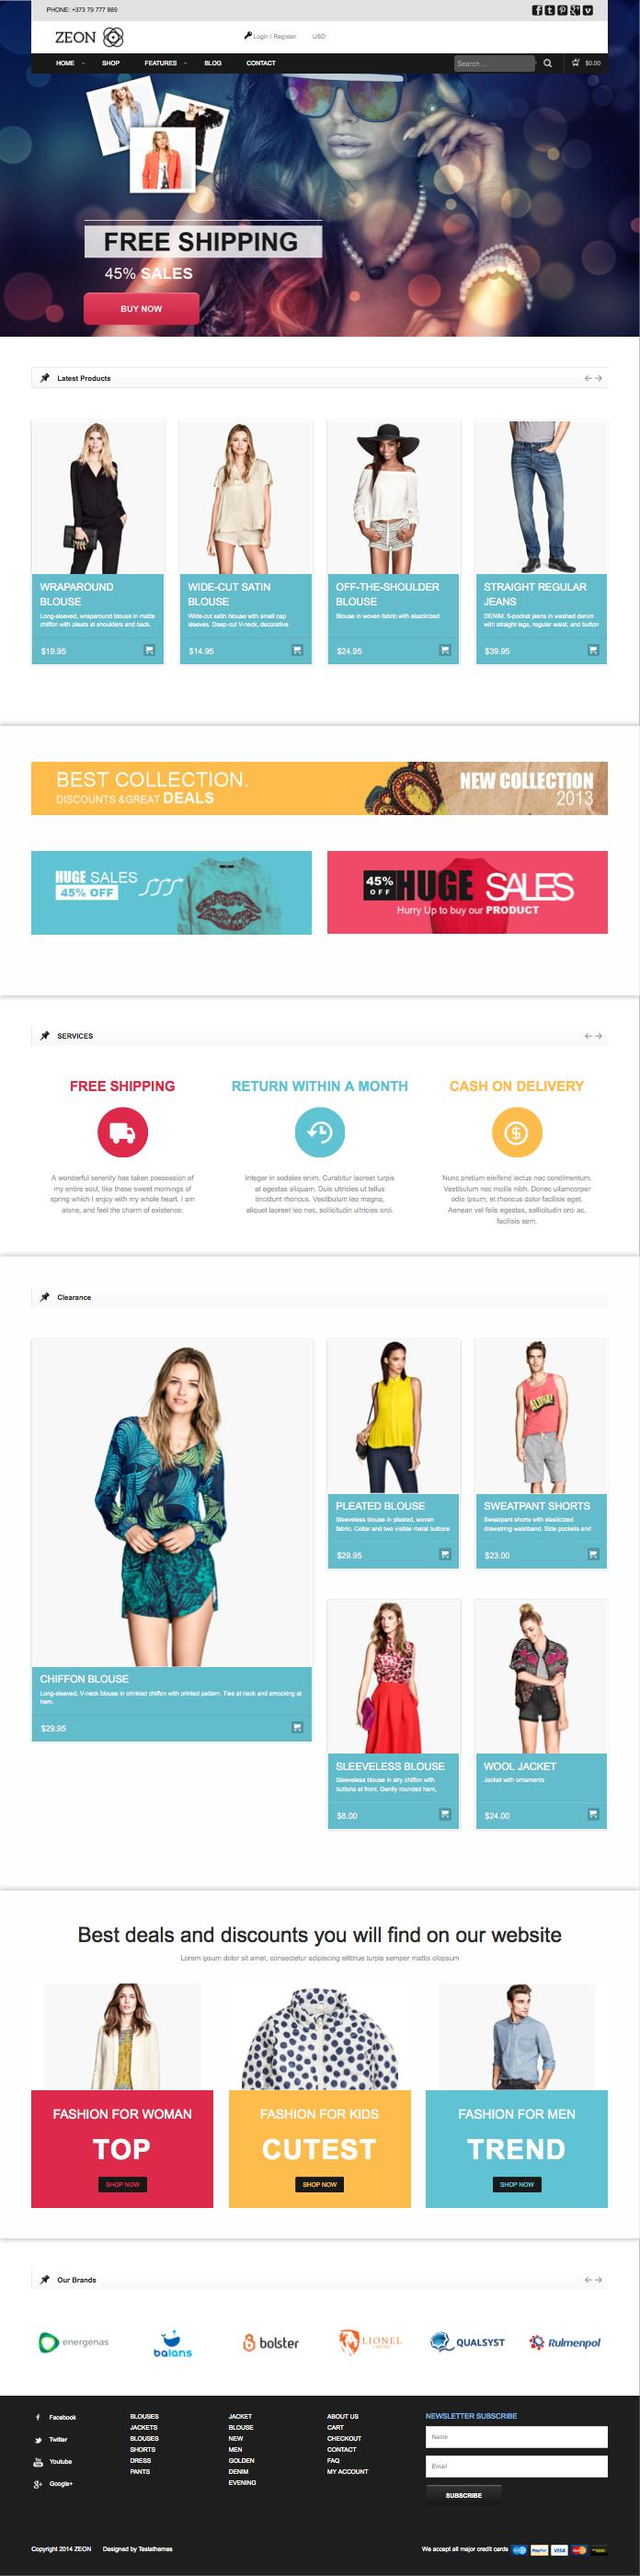 Zeon WordPress Online Store, eShop Design Theme